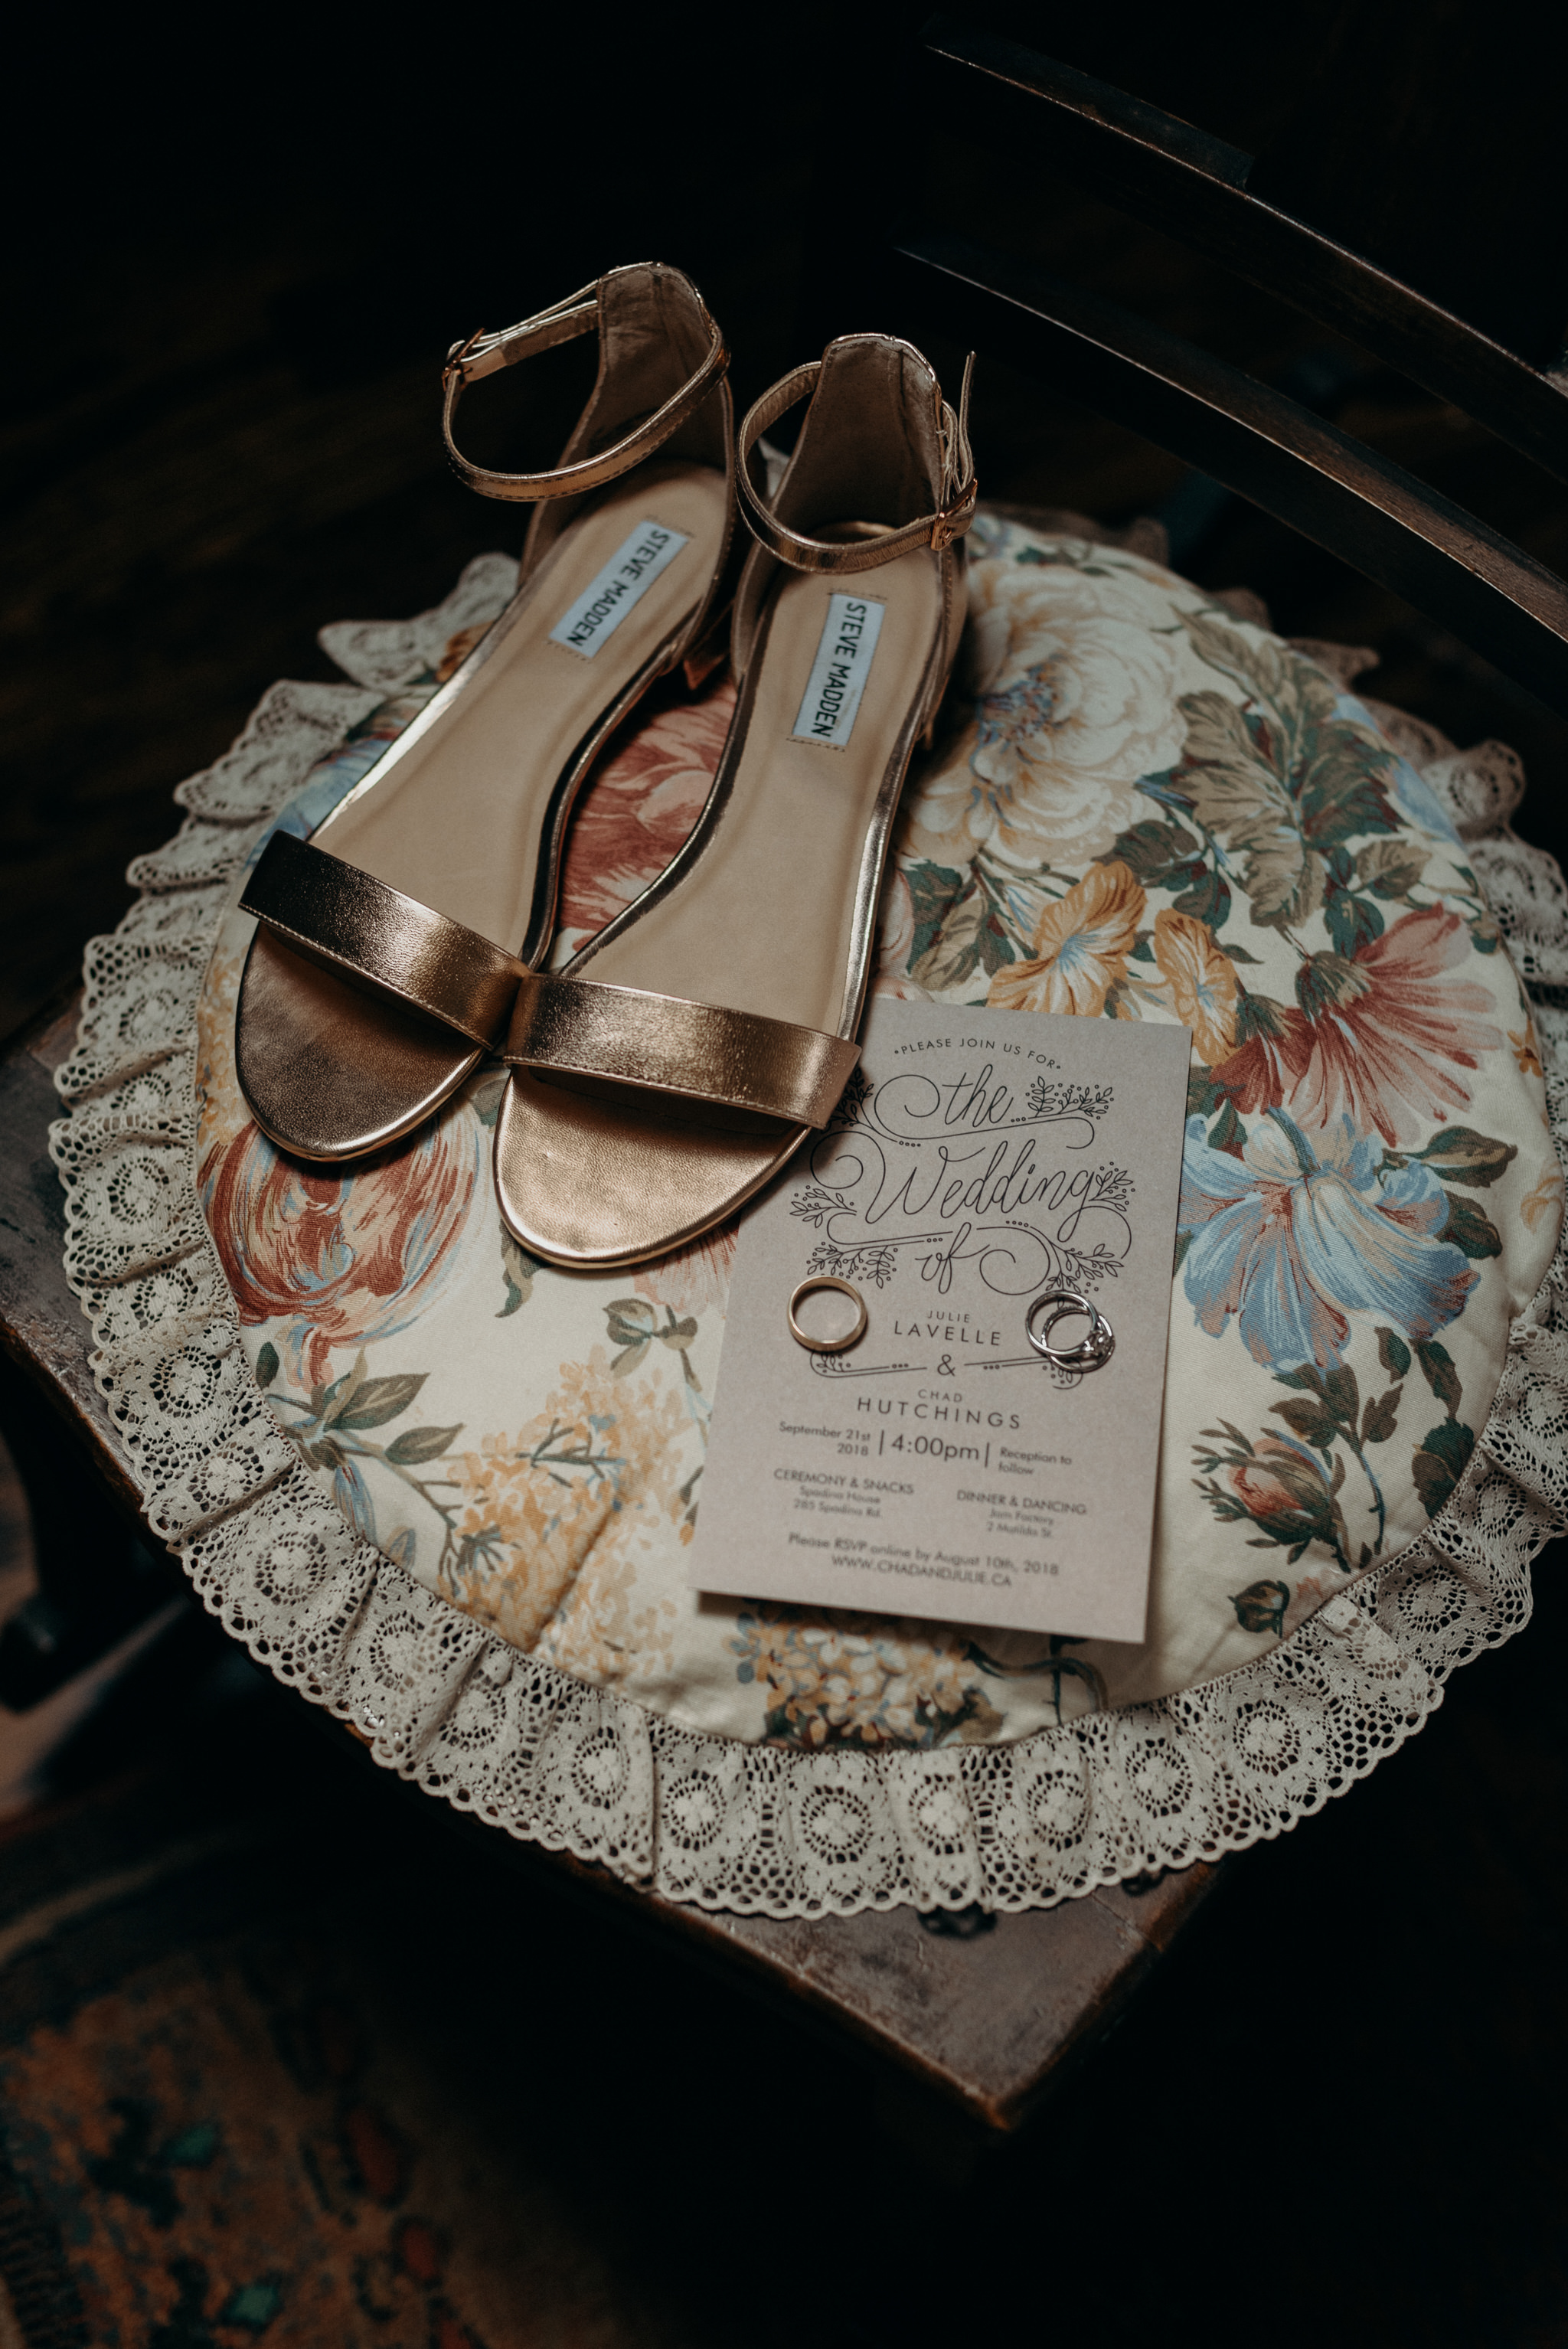 wedding shoes, invitation and rings on round floral pillow